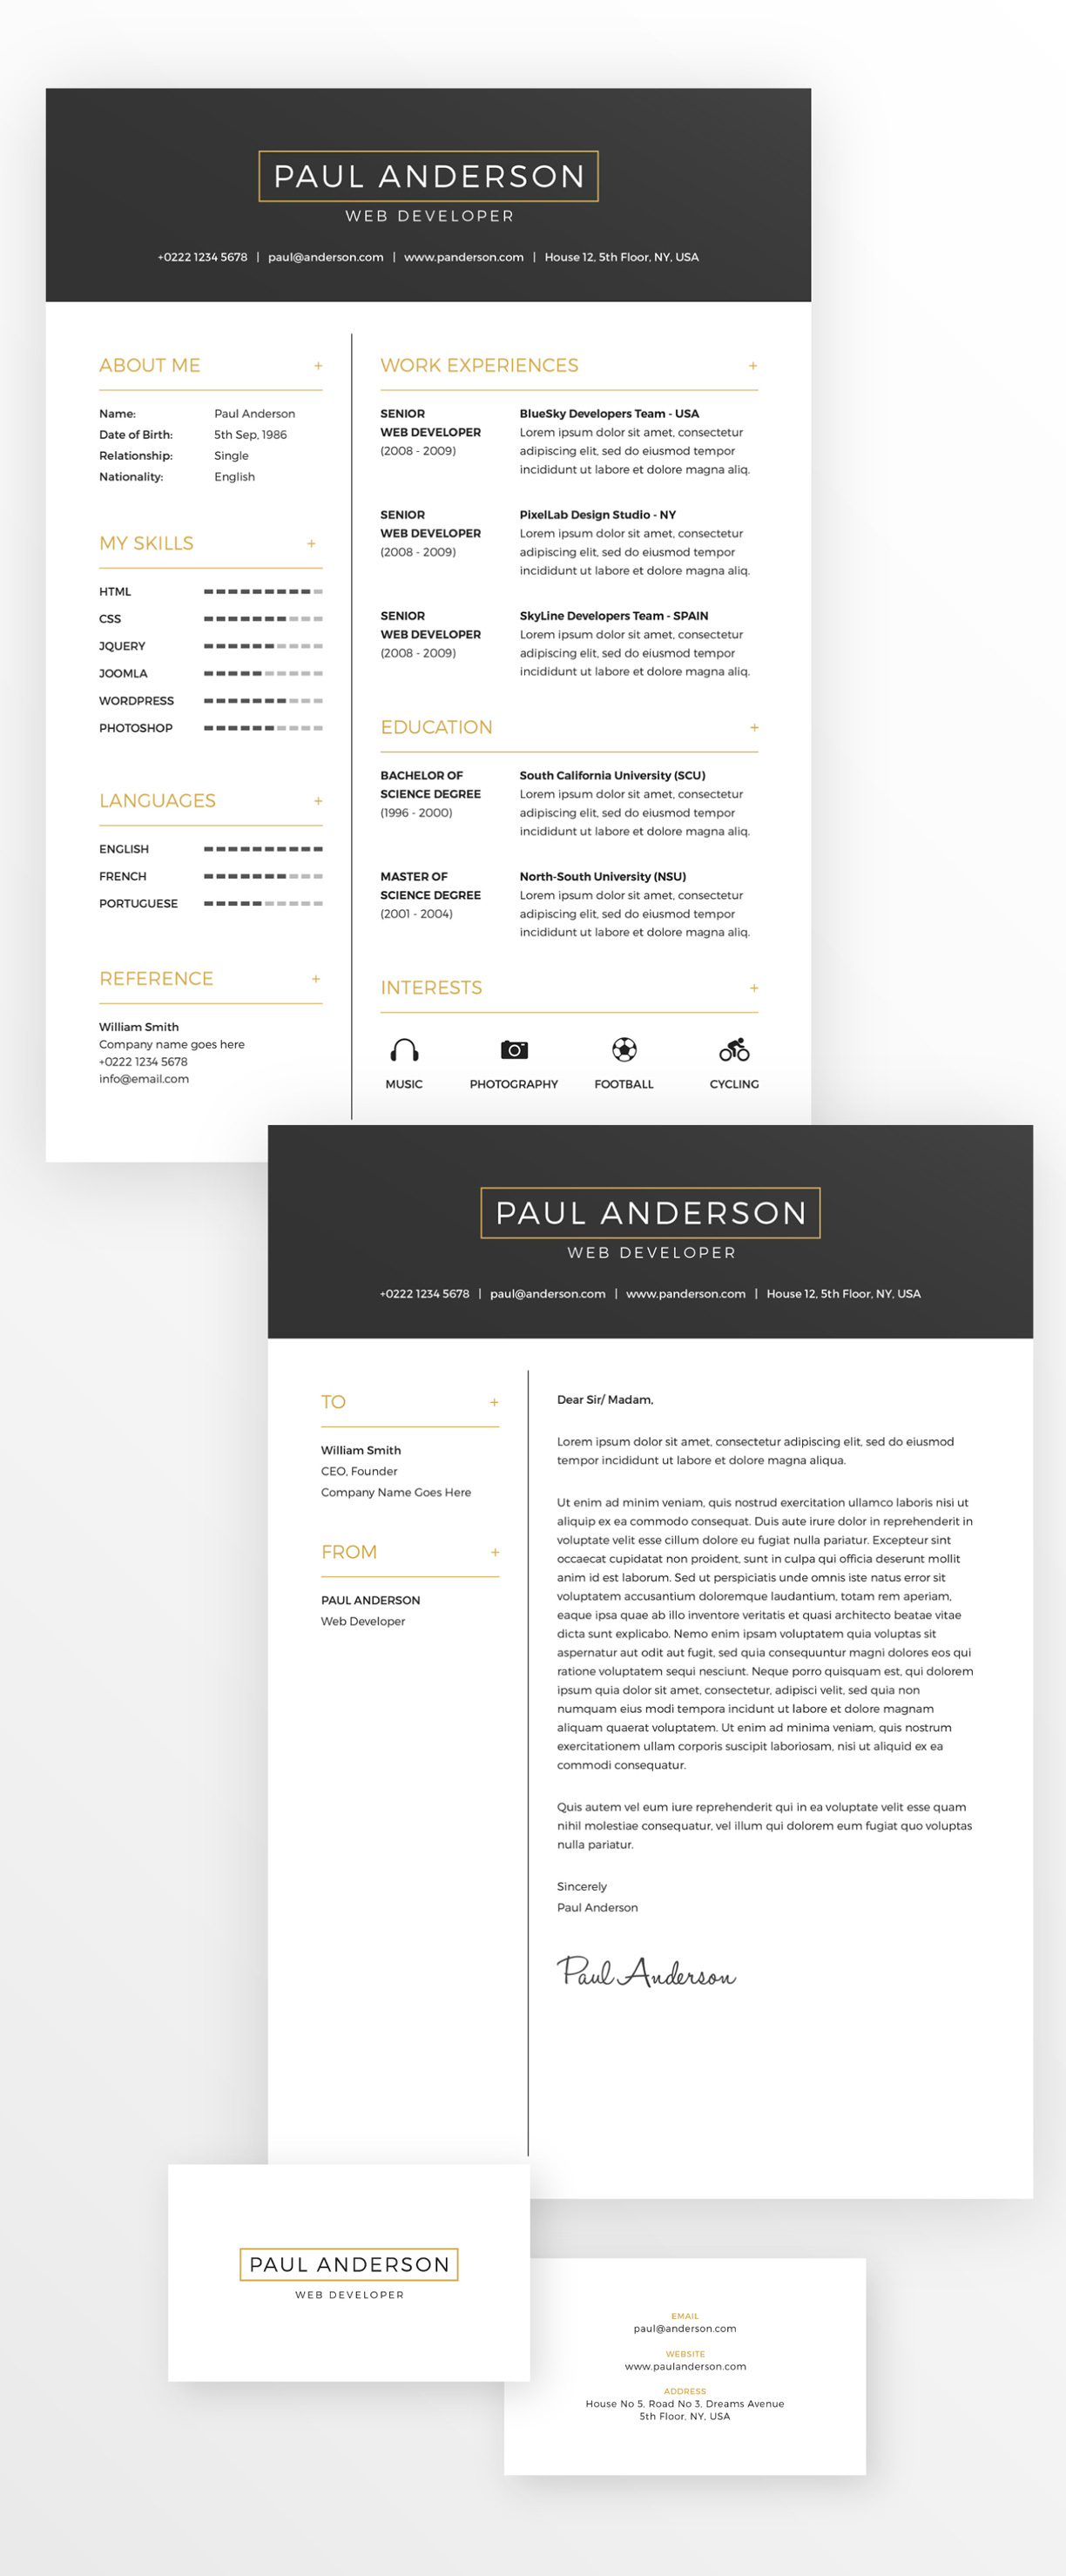 free minimal resume cv design template with cover letter business card design psd file. Black Bedroom Furniture Sets. Home Design Ideas